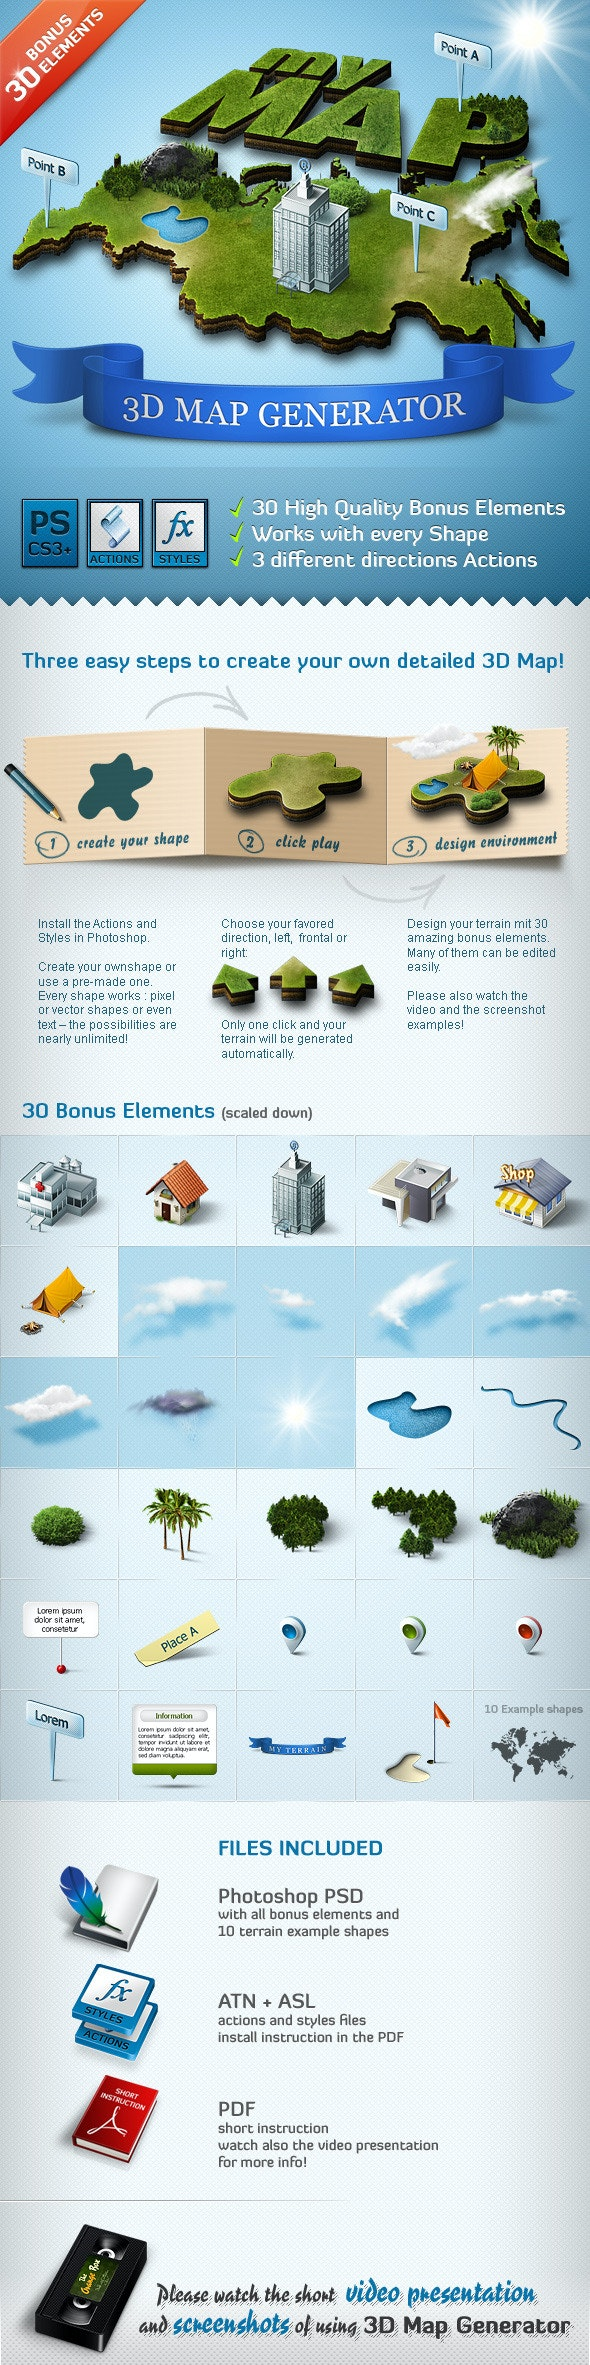 3D Map Generator - Action by Orange_Box | GraphicRiver